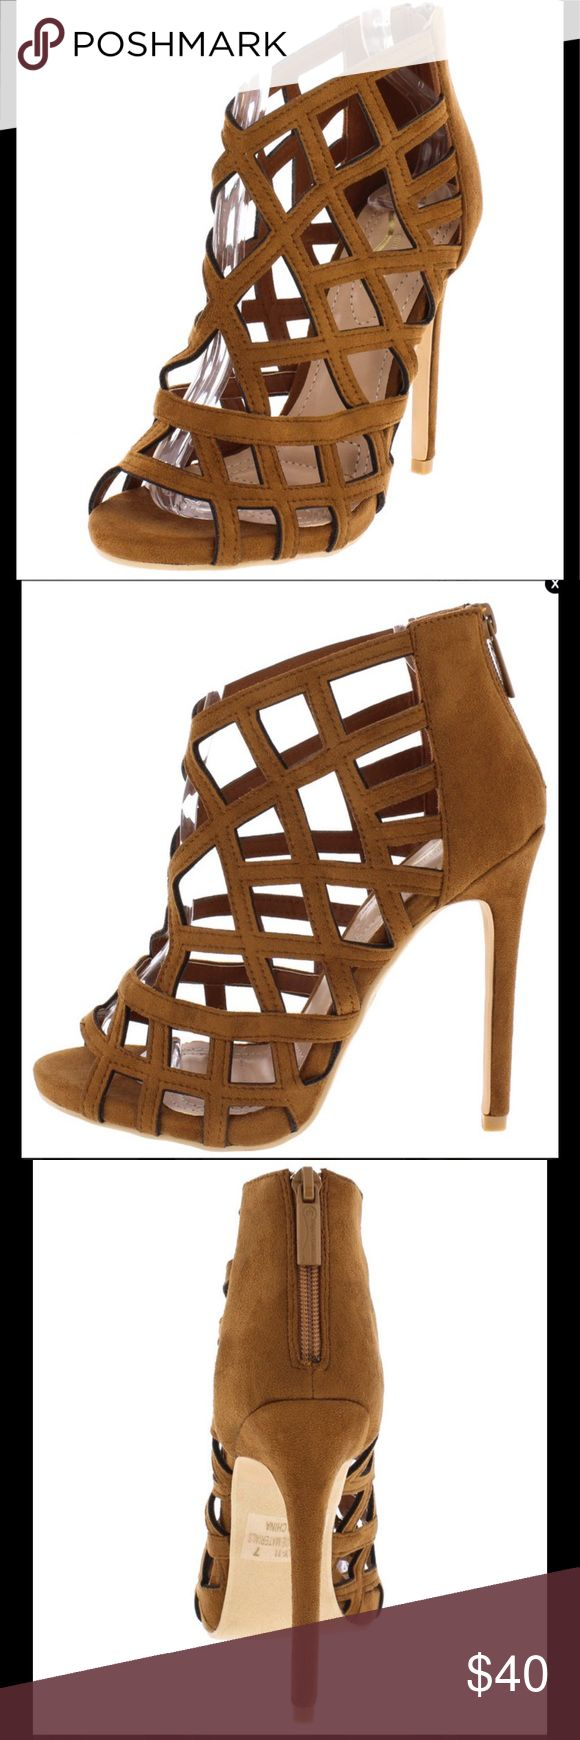 """Camel women's caged sandal Gorgeous caged sandals.  4.5"""" heels. Looks great with jeans & just about everything.  Available in camel.  Vegan leather.  Available in sizes 8.5 & 10 Shoes Sandals"""